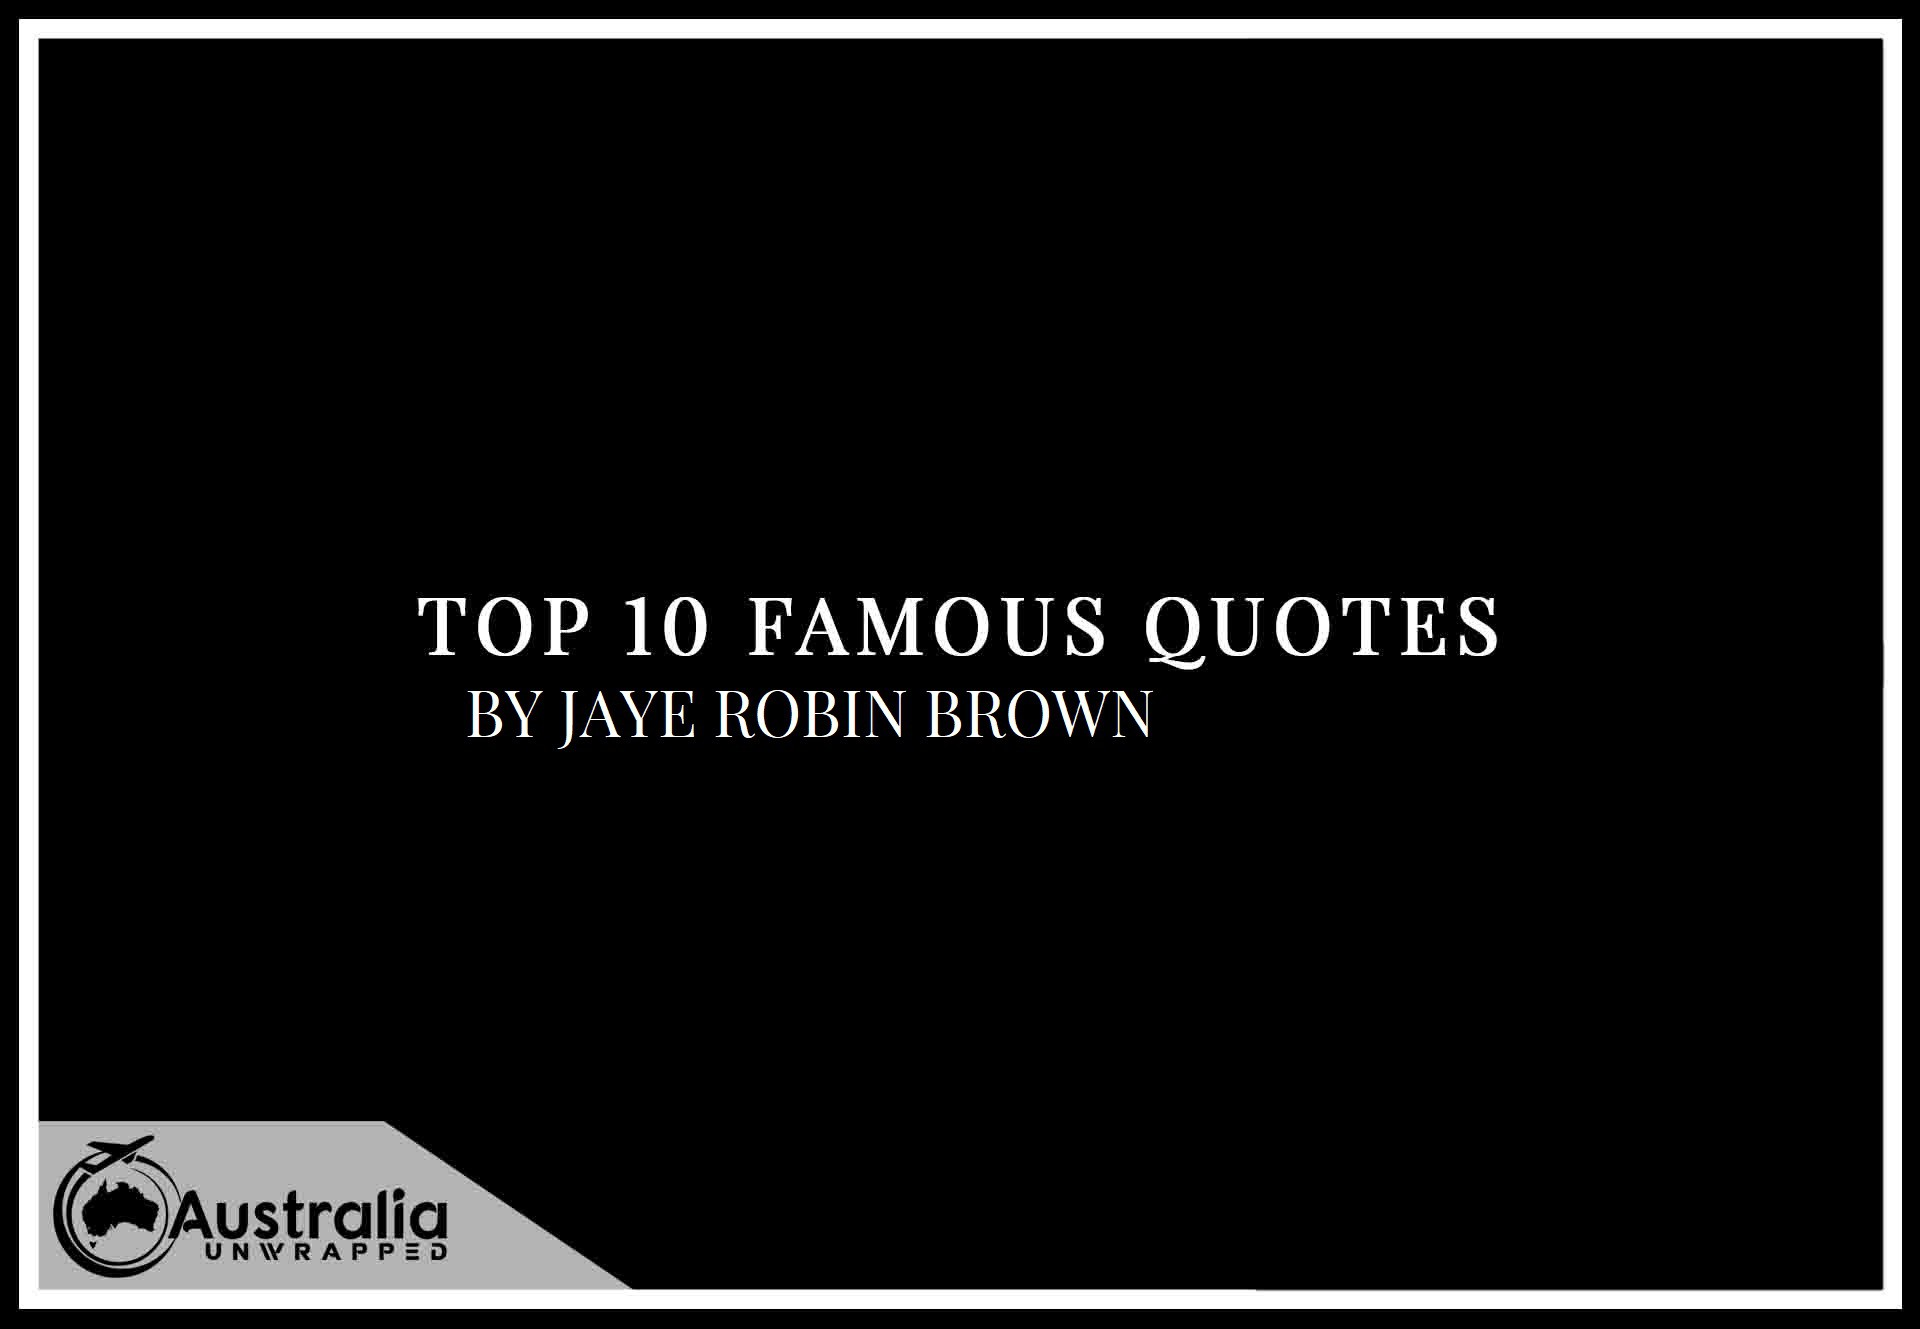 Top 10 Famous Quotes by Author Jaye Robin Brown